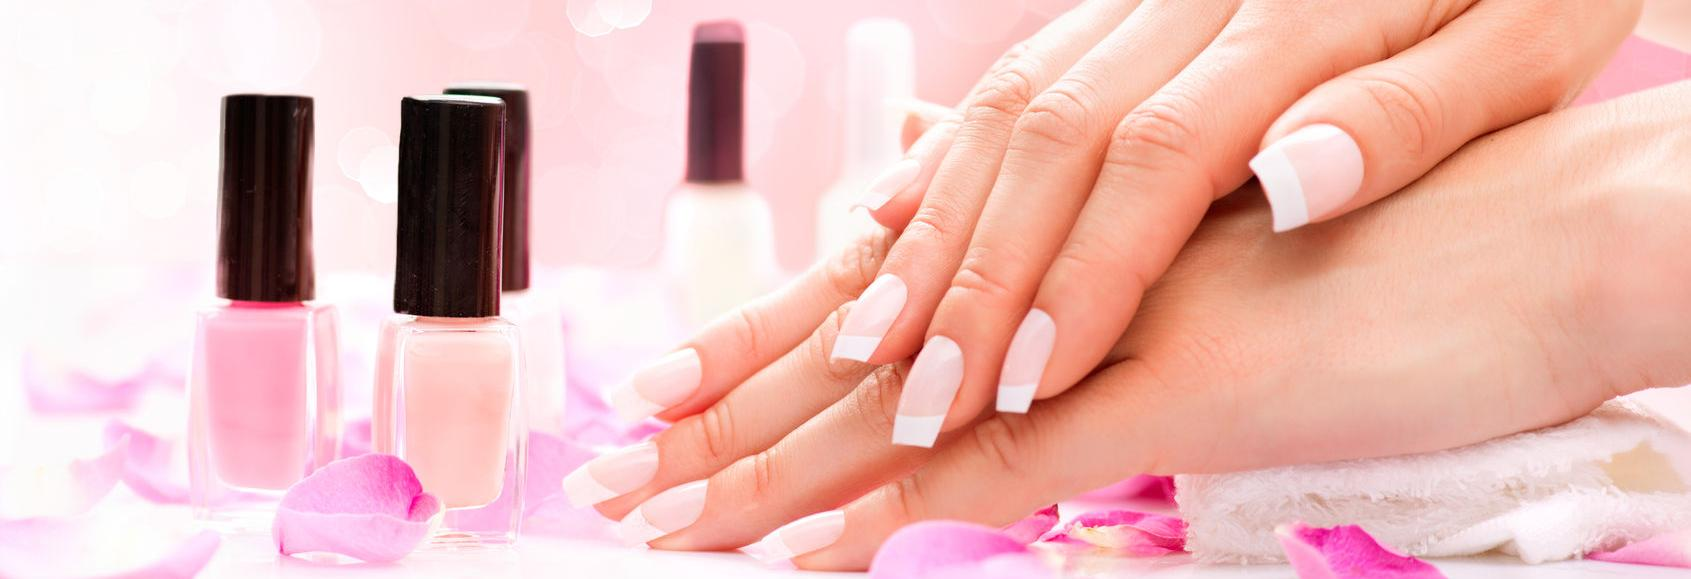 Our Services Manicure Pedicure Artificial Nails Waxing, Facial & Massage Extended Services